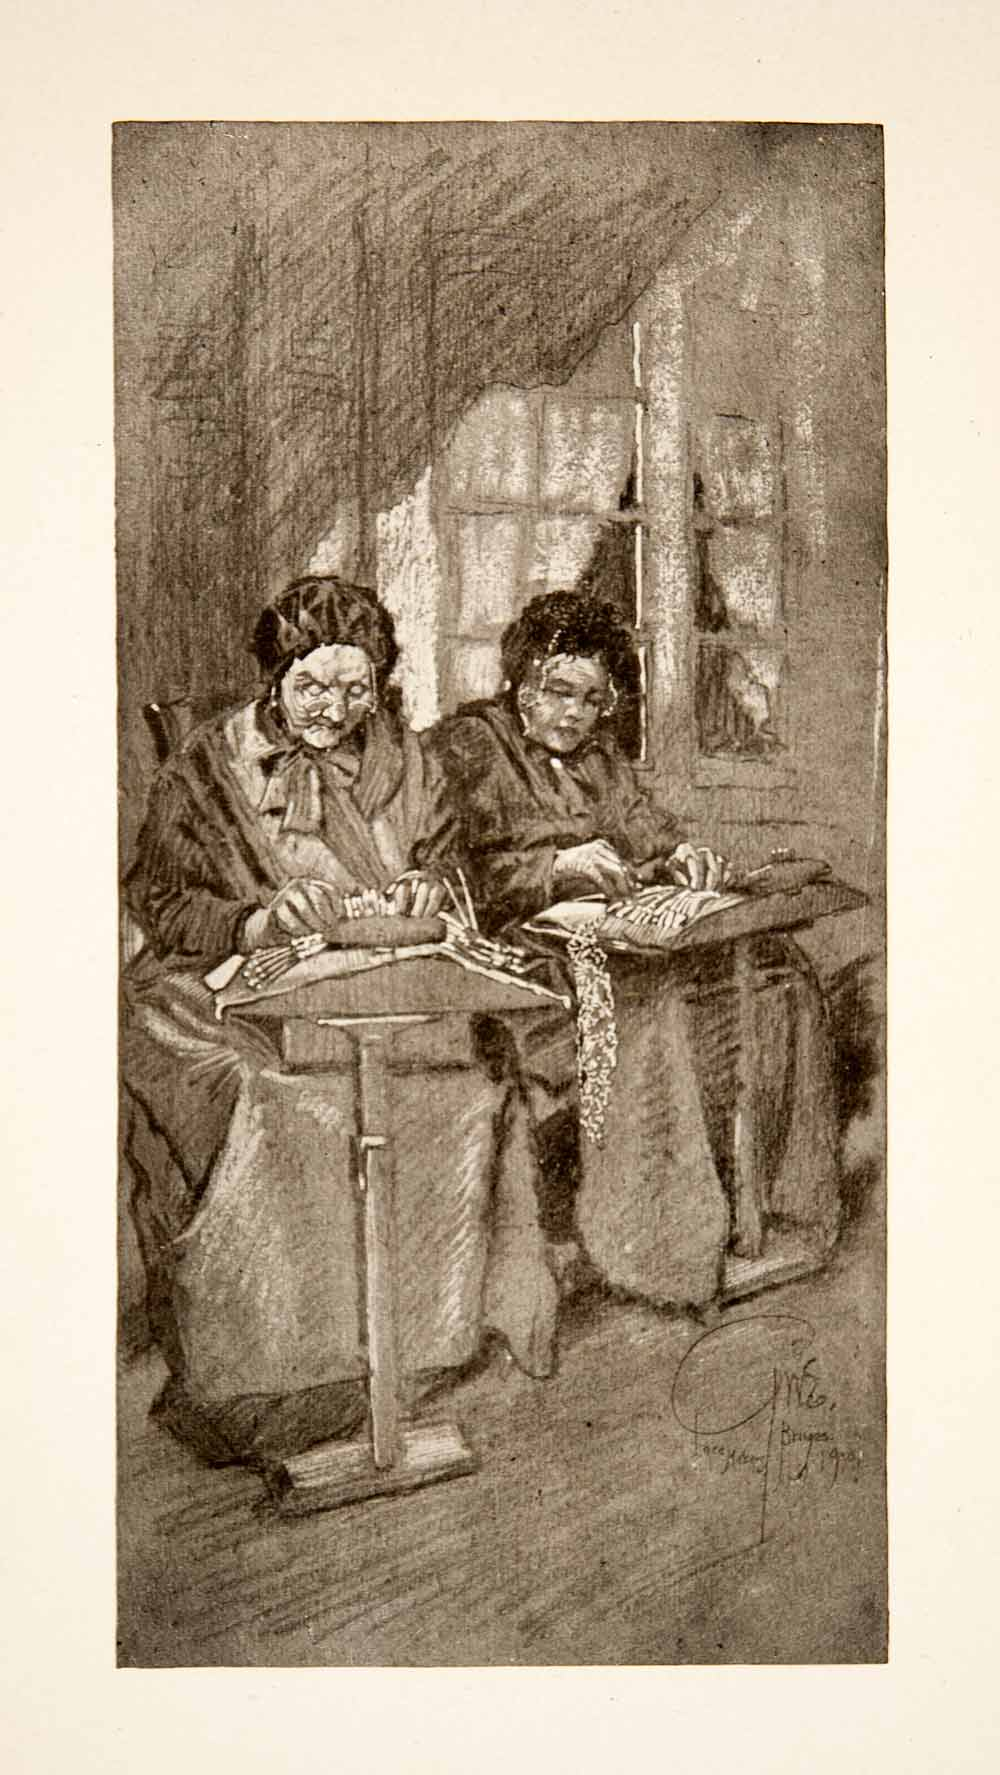 1911 Print Bruges Belgium Flemish Lacemakers Women Handicraft George XGOB6